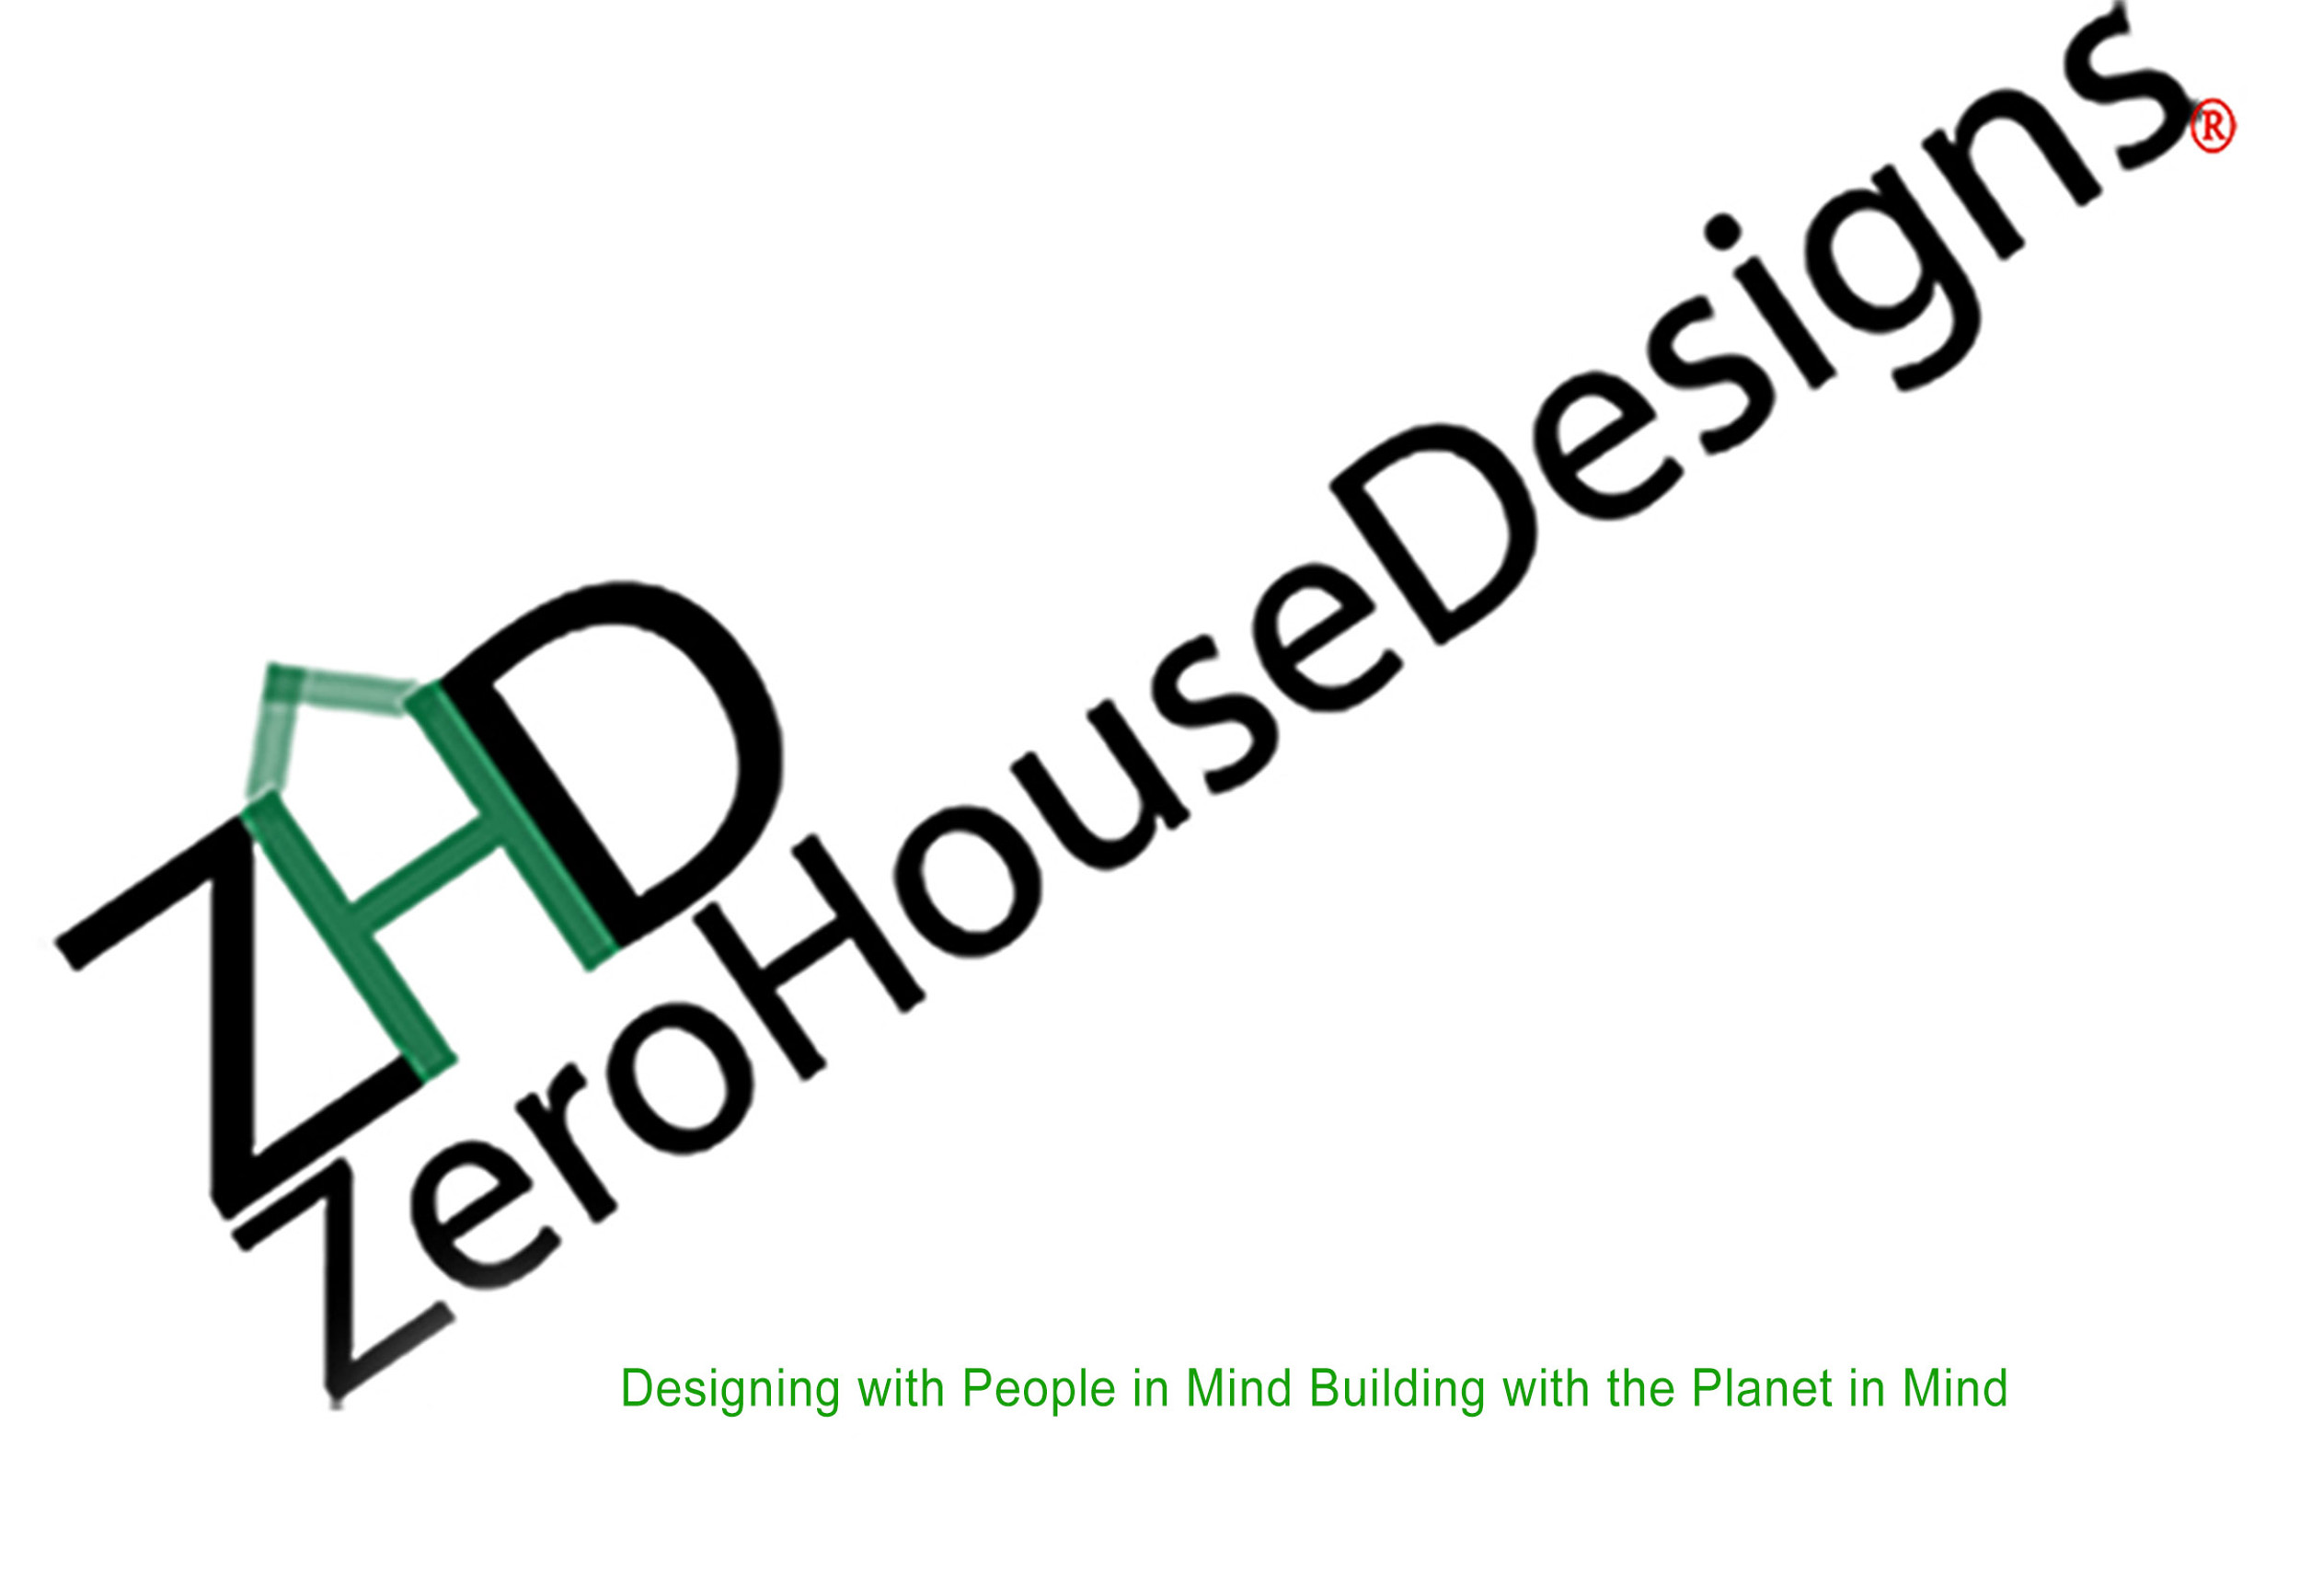 Home Construction Zero Energy Building To Reduce Green House Gasses